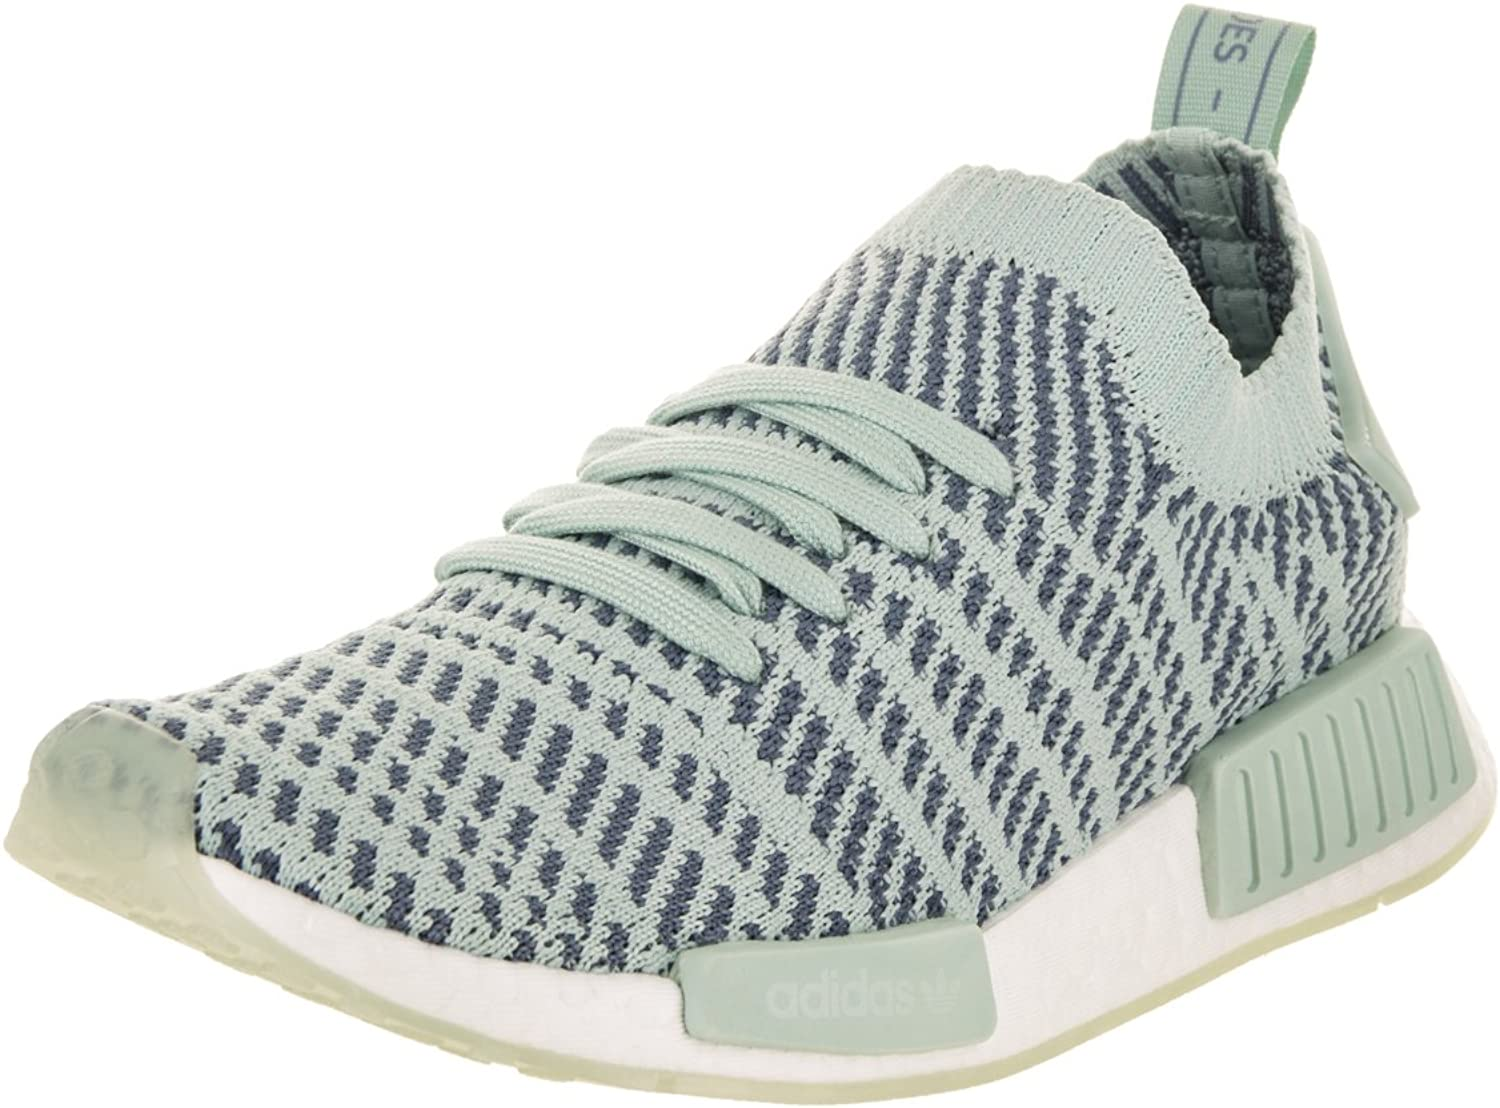 STLT shoes Running Originals Primeknit NMD_R1 Women's Adidas